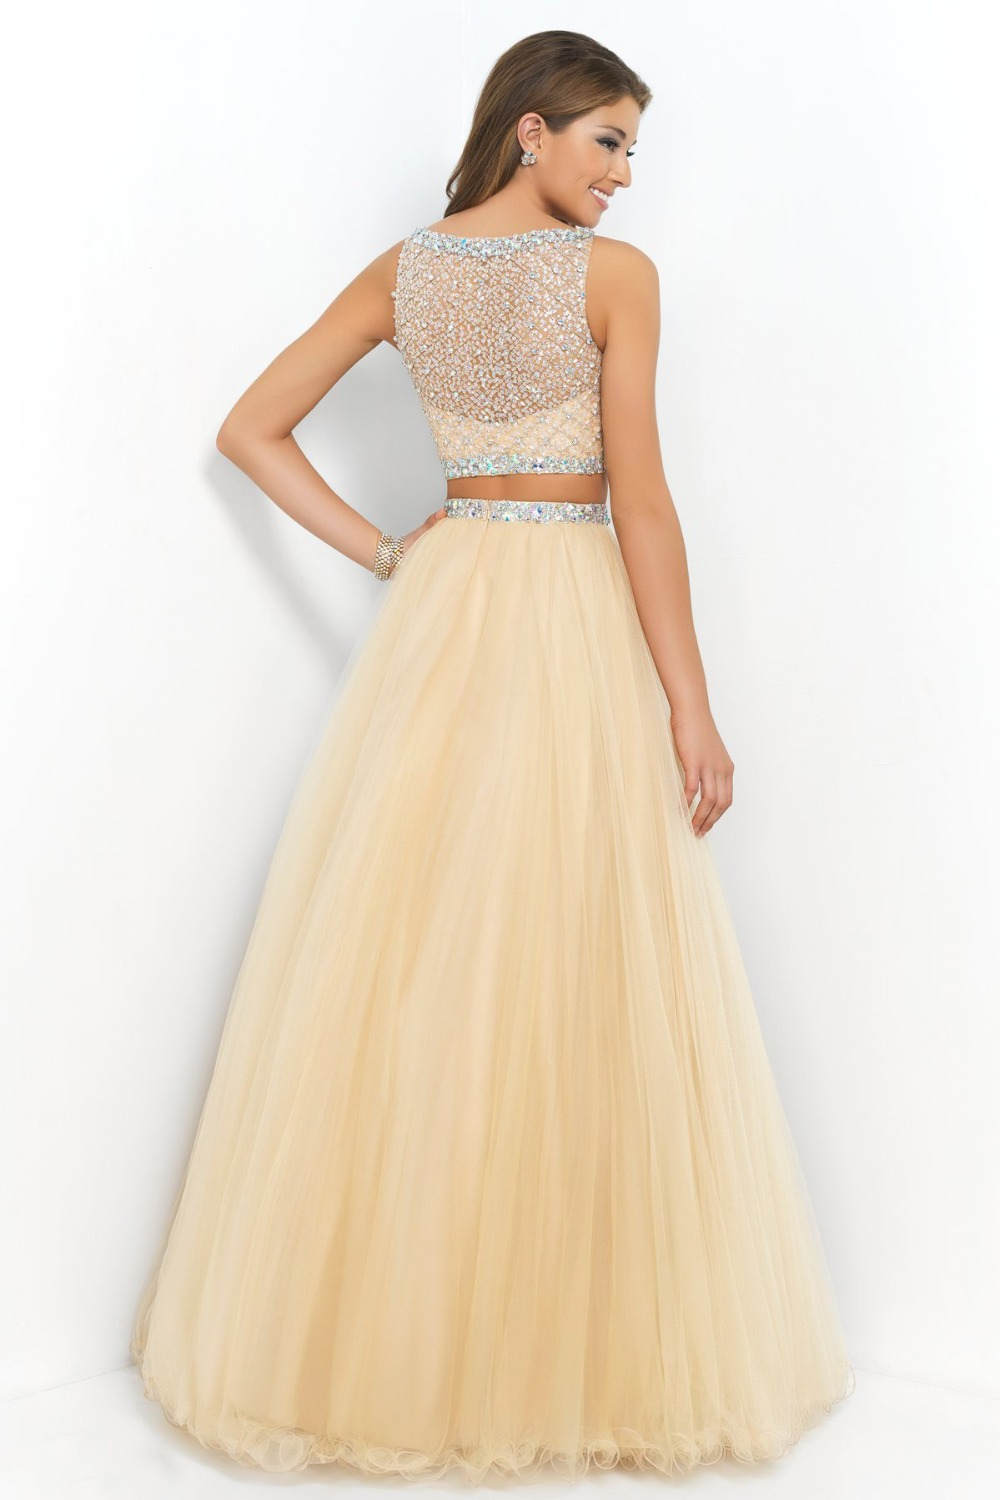 Prom dress rental stores near me gown and dress gallery for Discount wedding dress stores near me